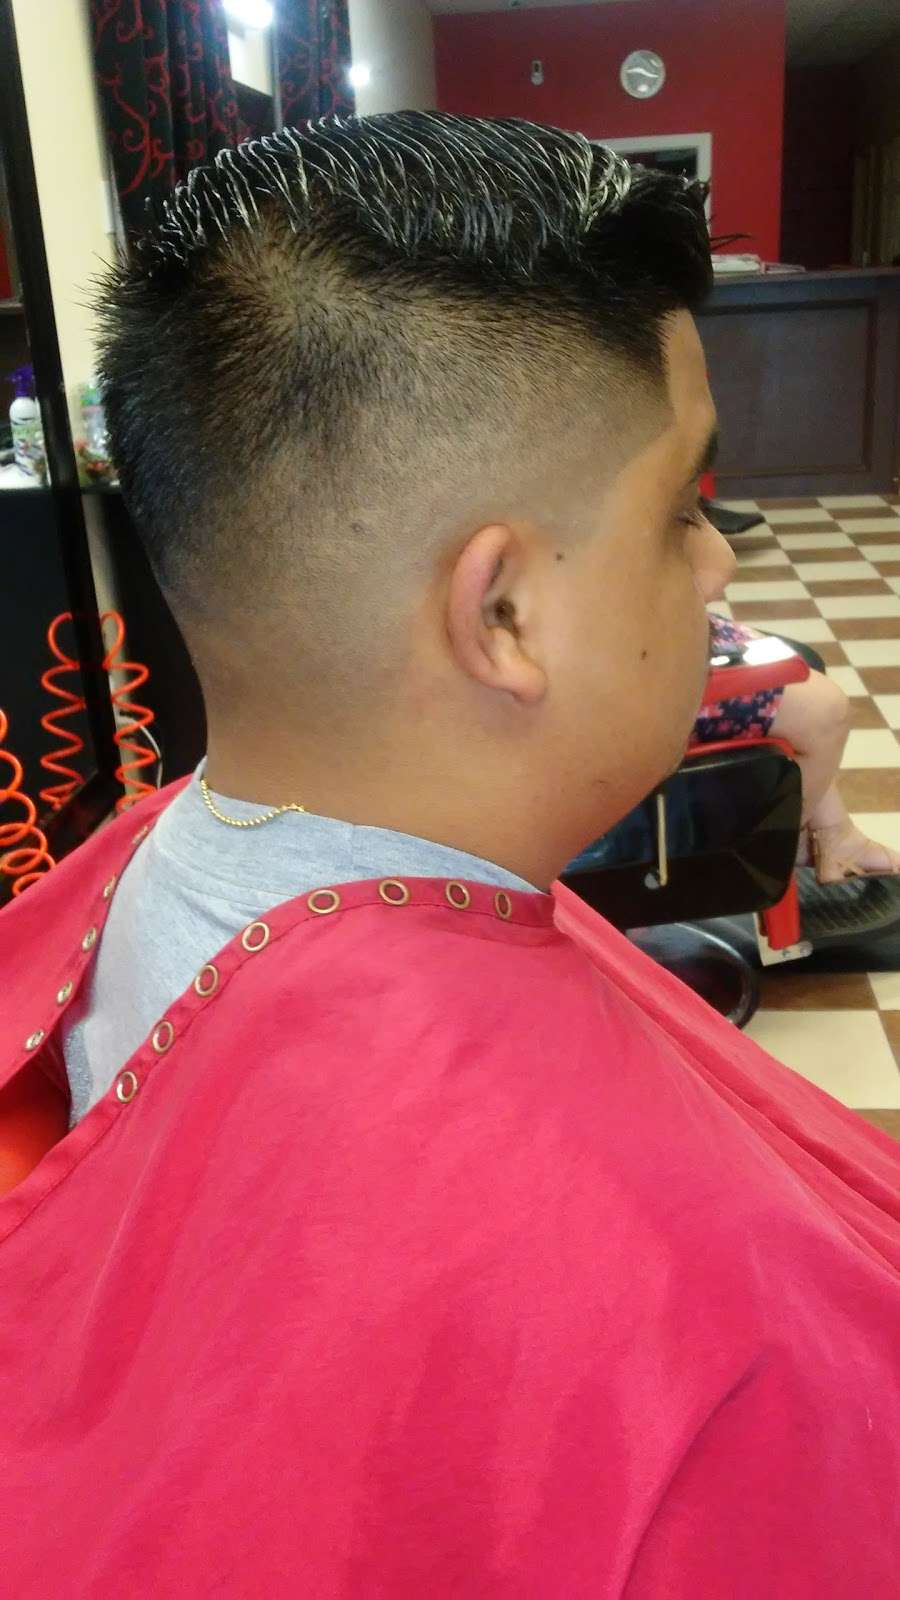 new style salon and barbershop - hair care  | Photo 9 of 10 | Address: 917 Greens Rd, Houston, TX 77060, USA | Phone: (281) 873-2121